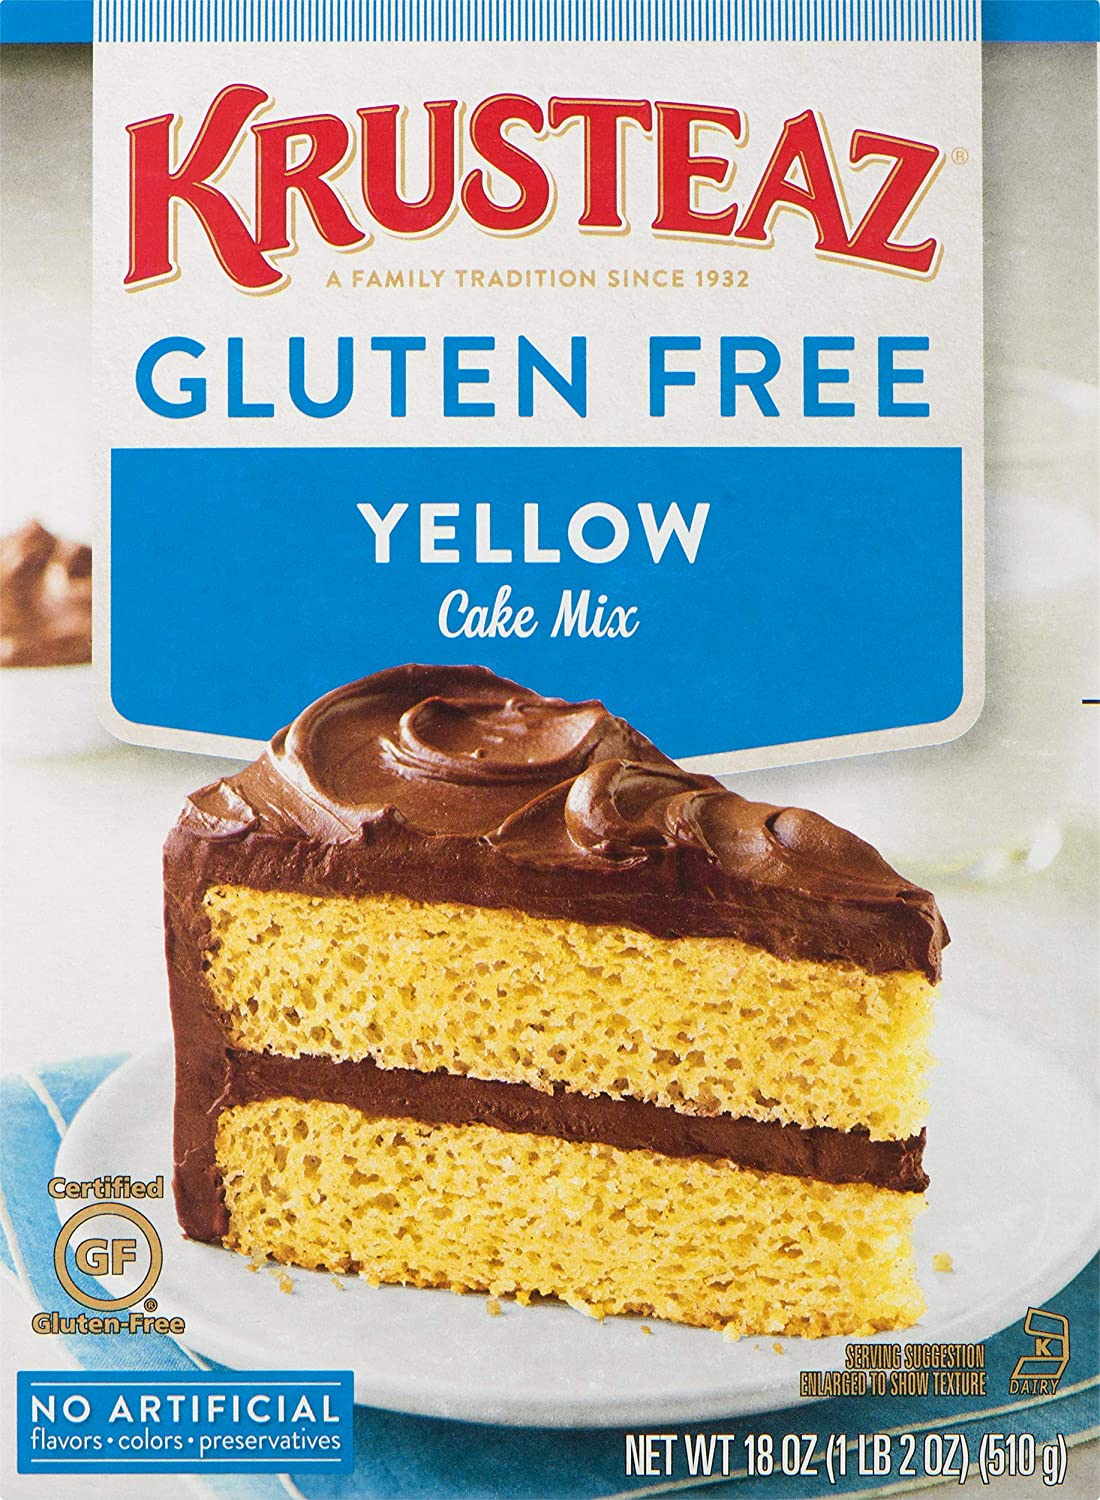 Krusteaz Gluten Free Yellow Cake Mix, 18 Ounce, Pack of 8